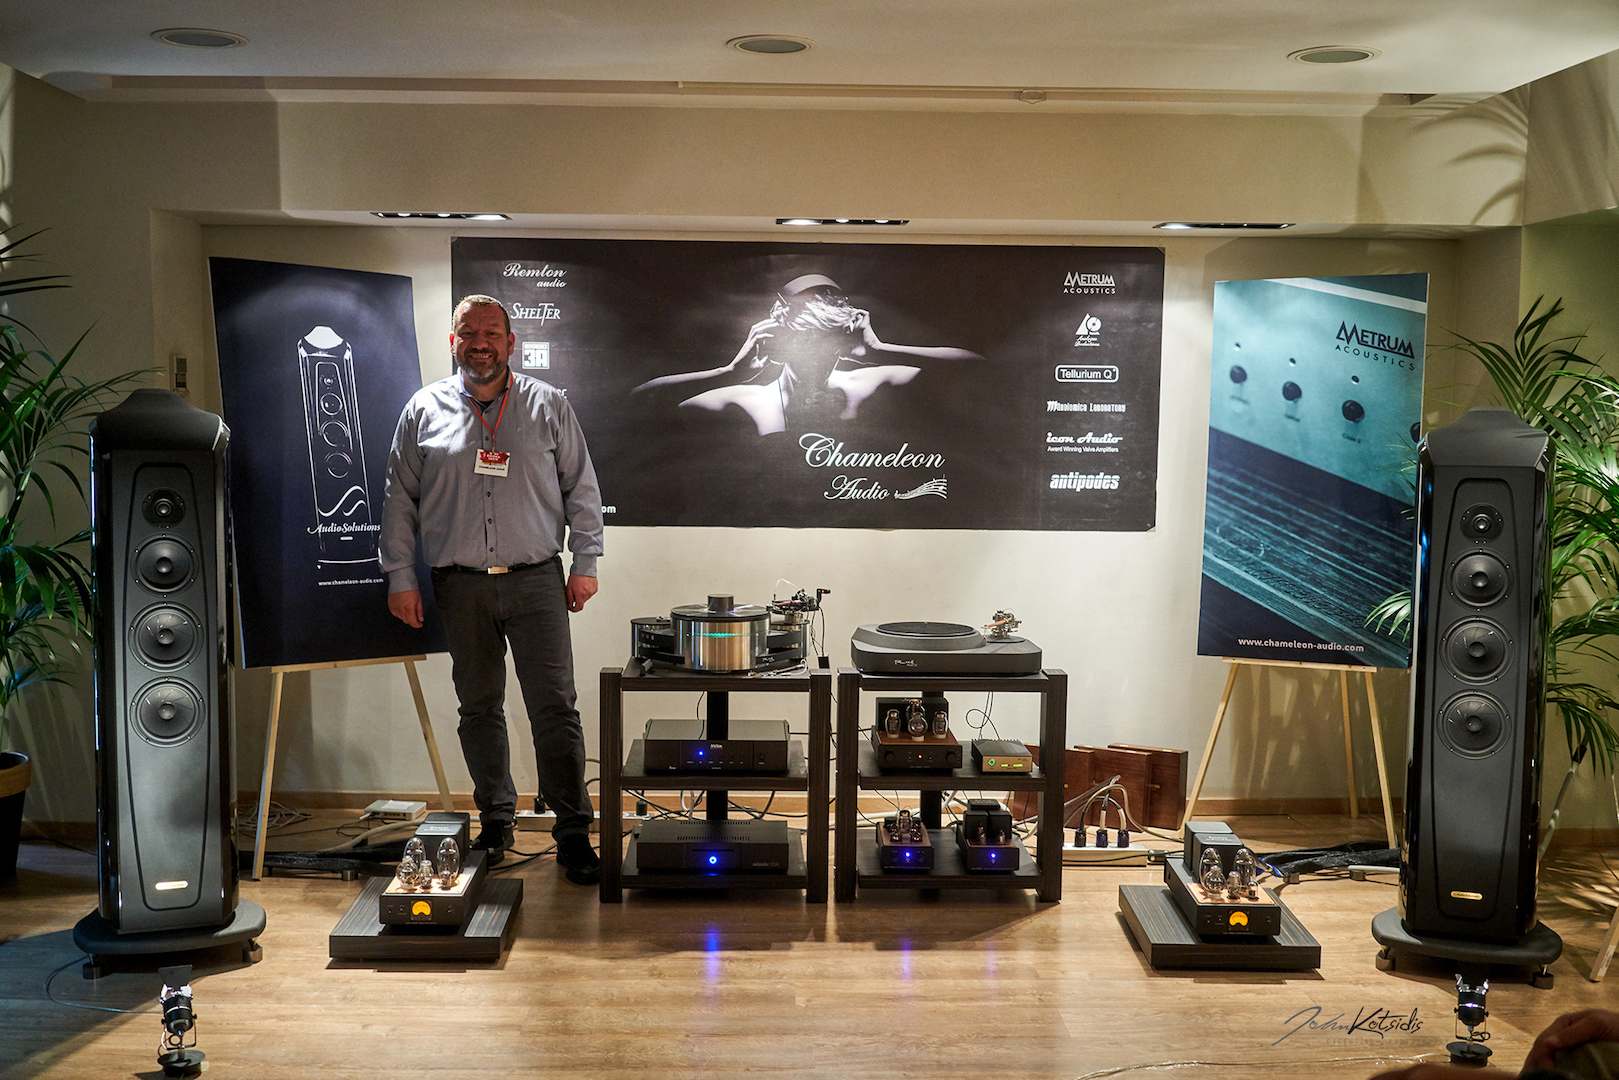 Chameleon audio in HXOS show Greece